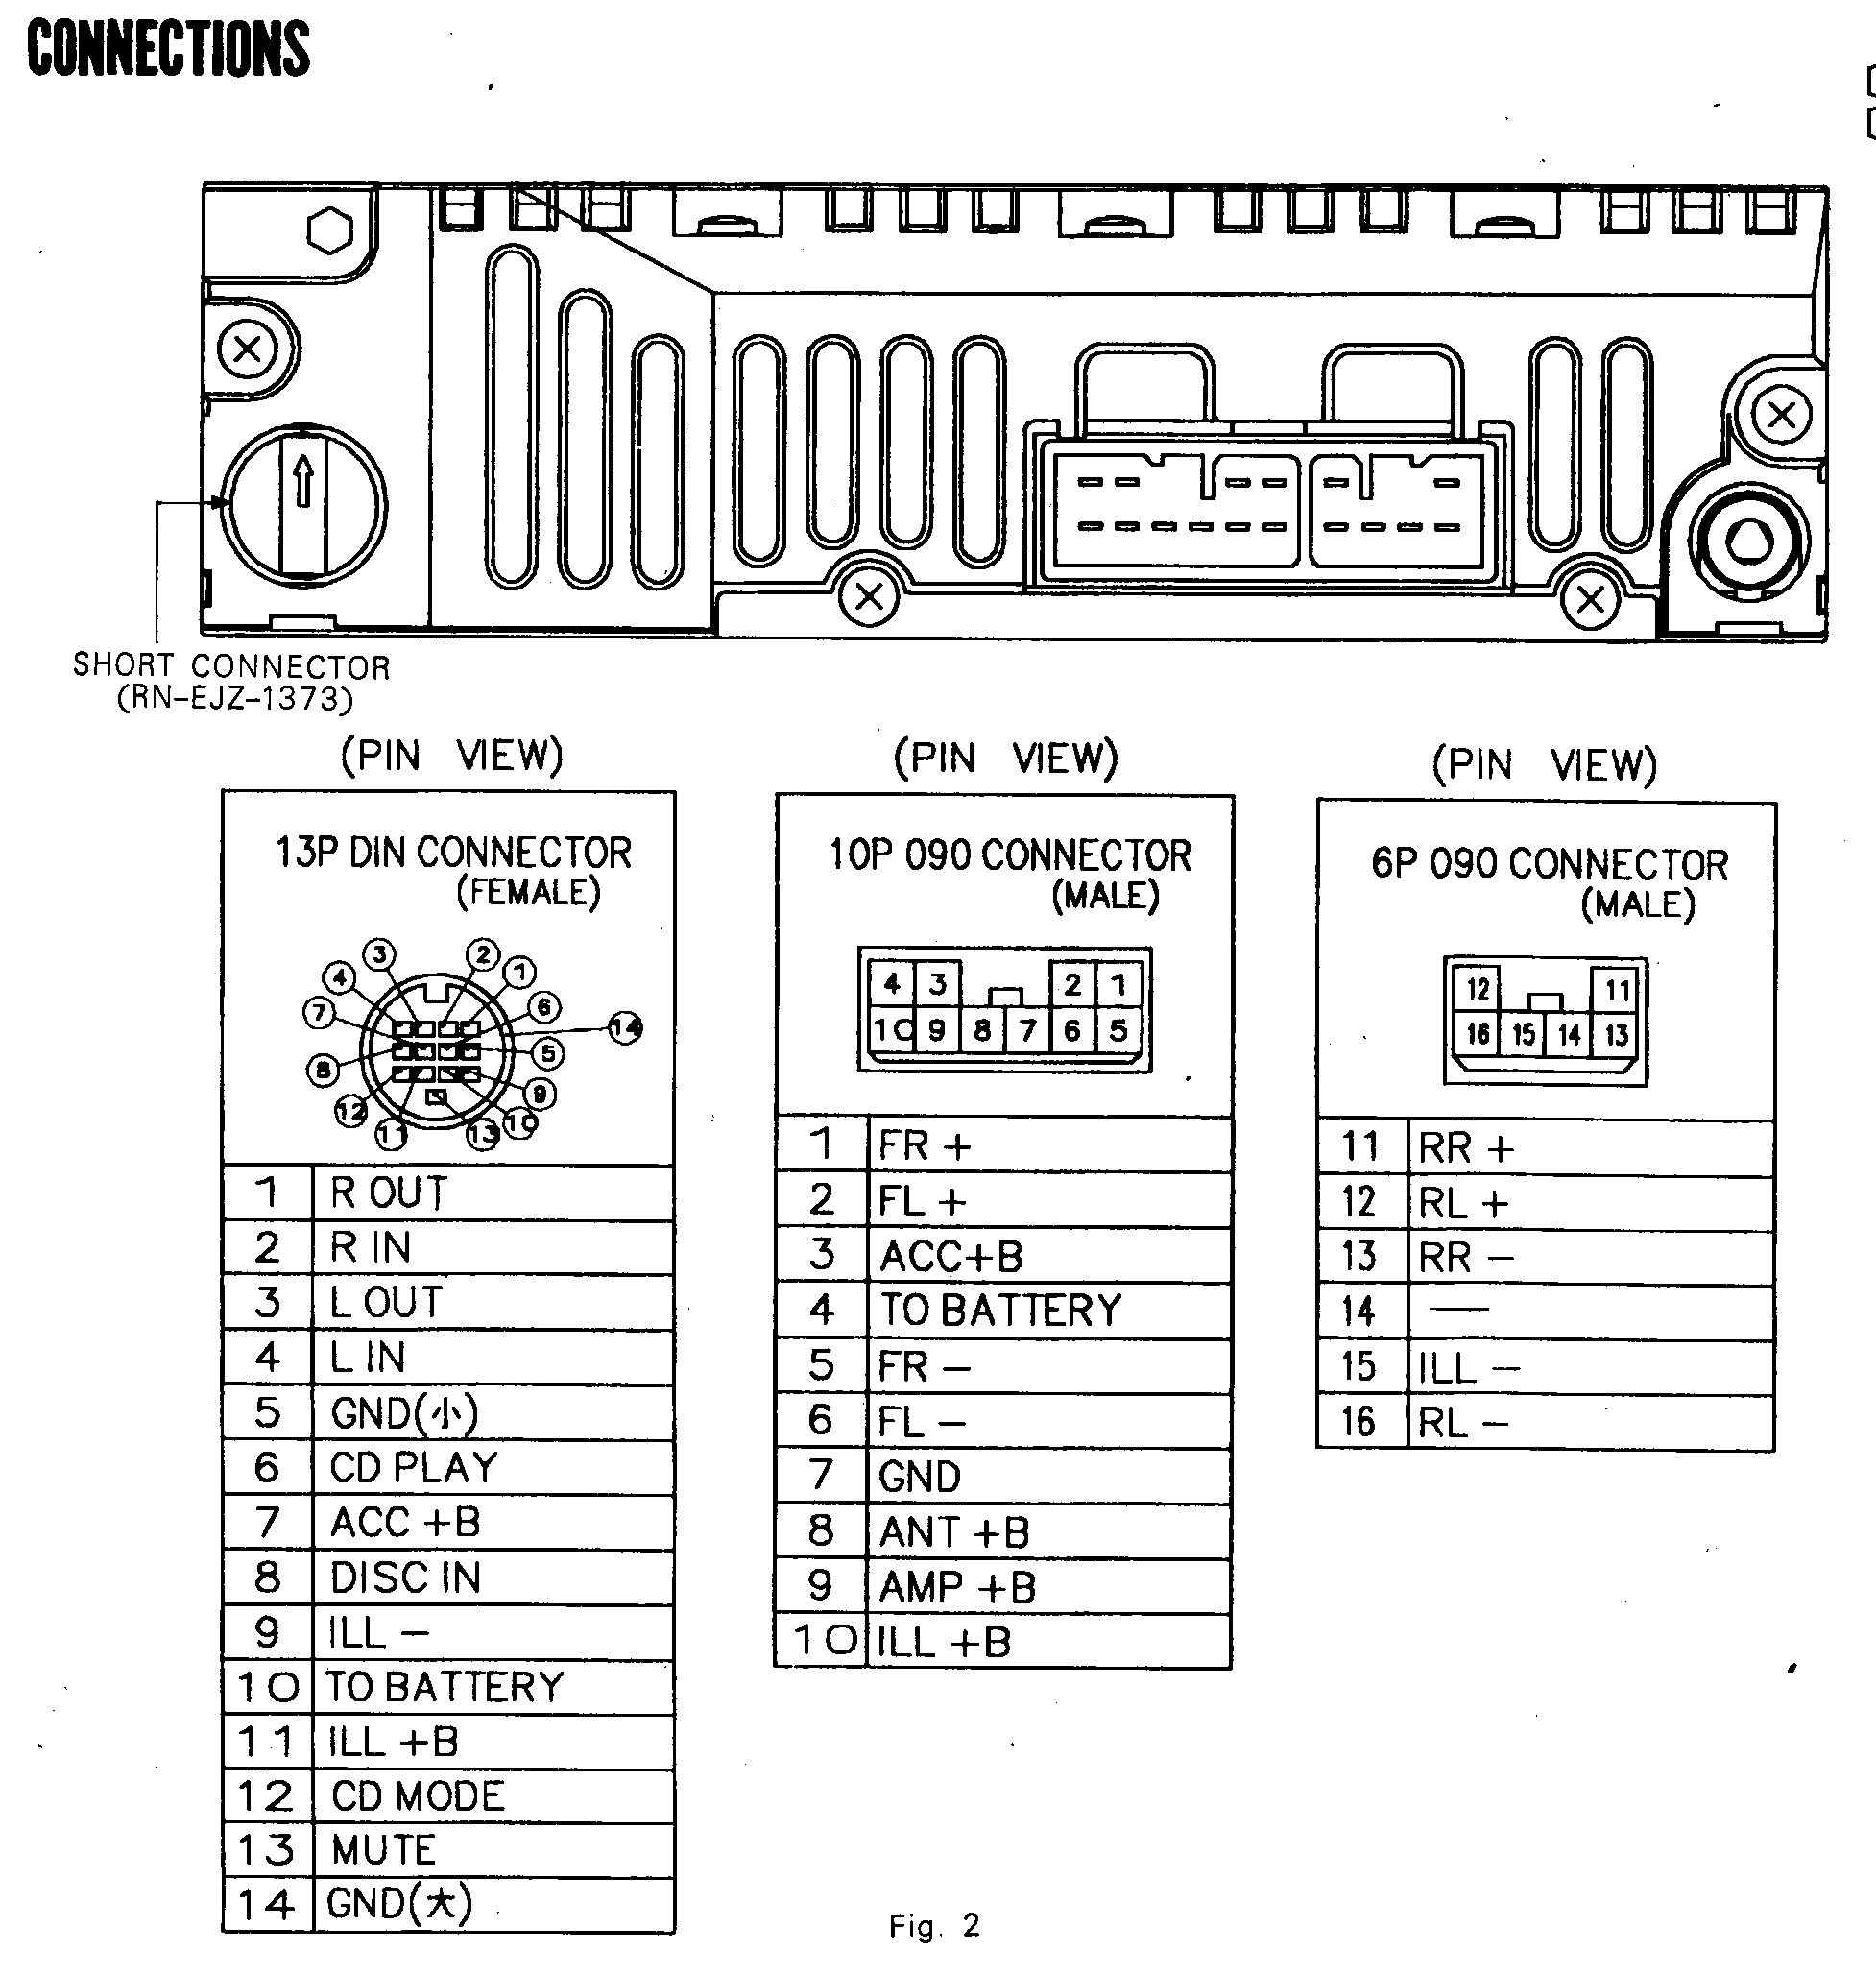 Toyota Stereo Wiring Diagram Schematics Car Help Wire Color Code Diagrams And 2006